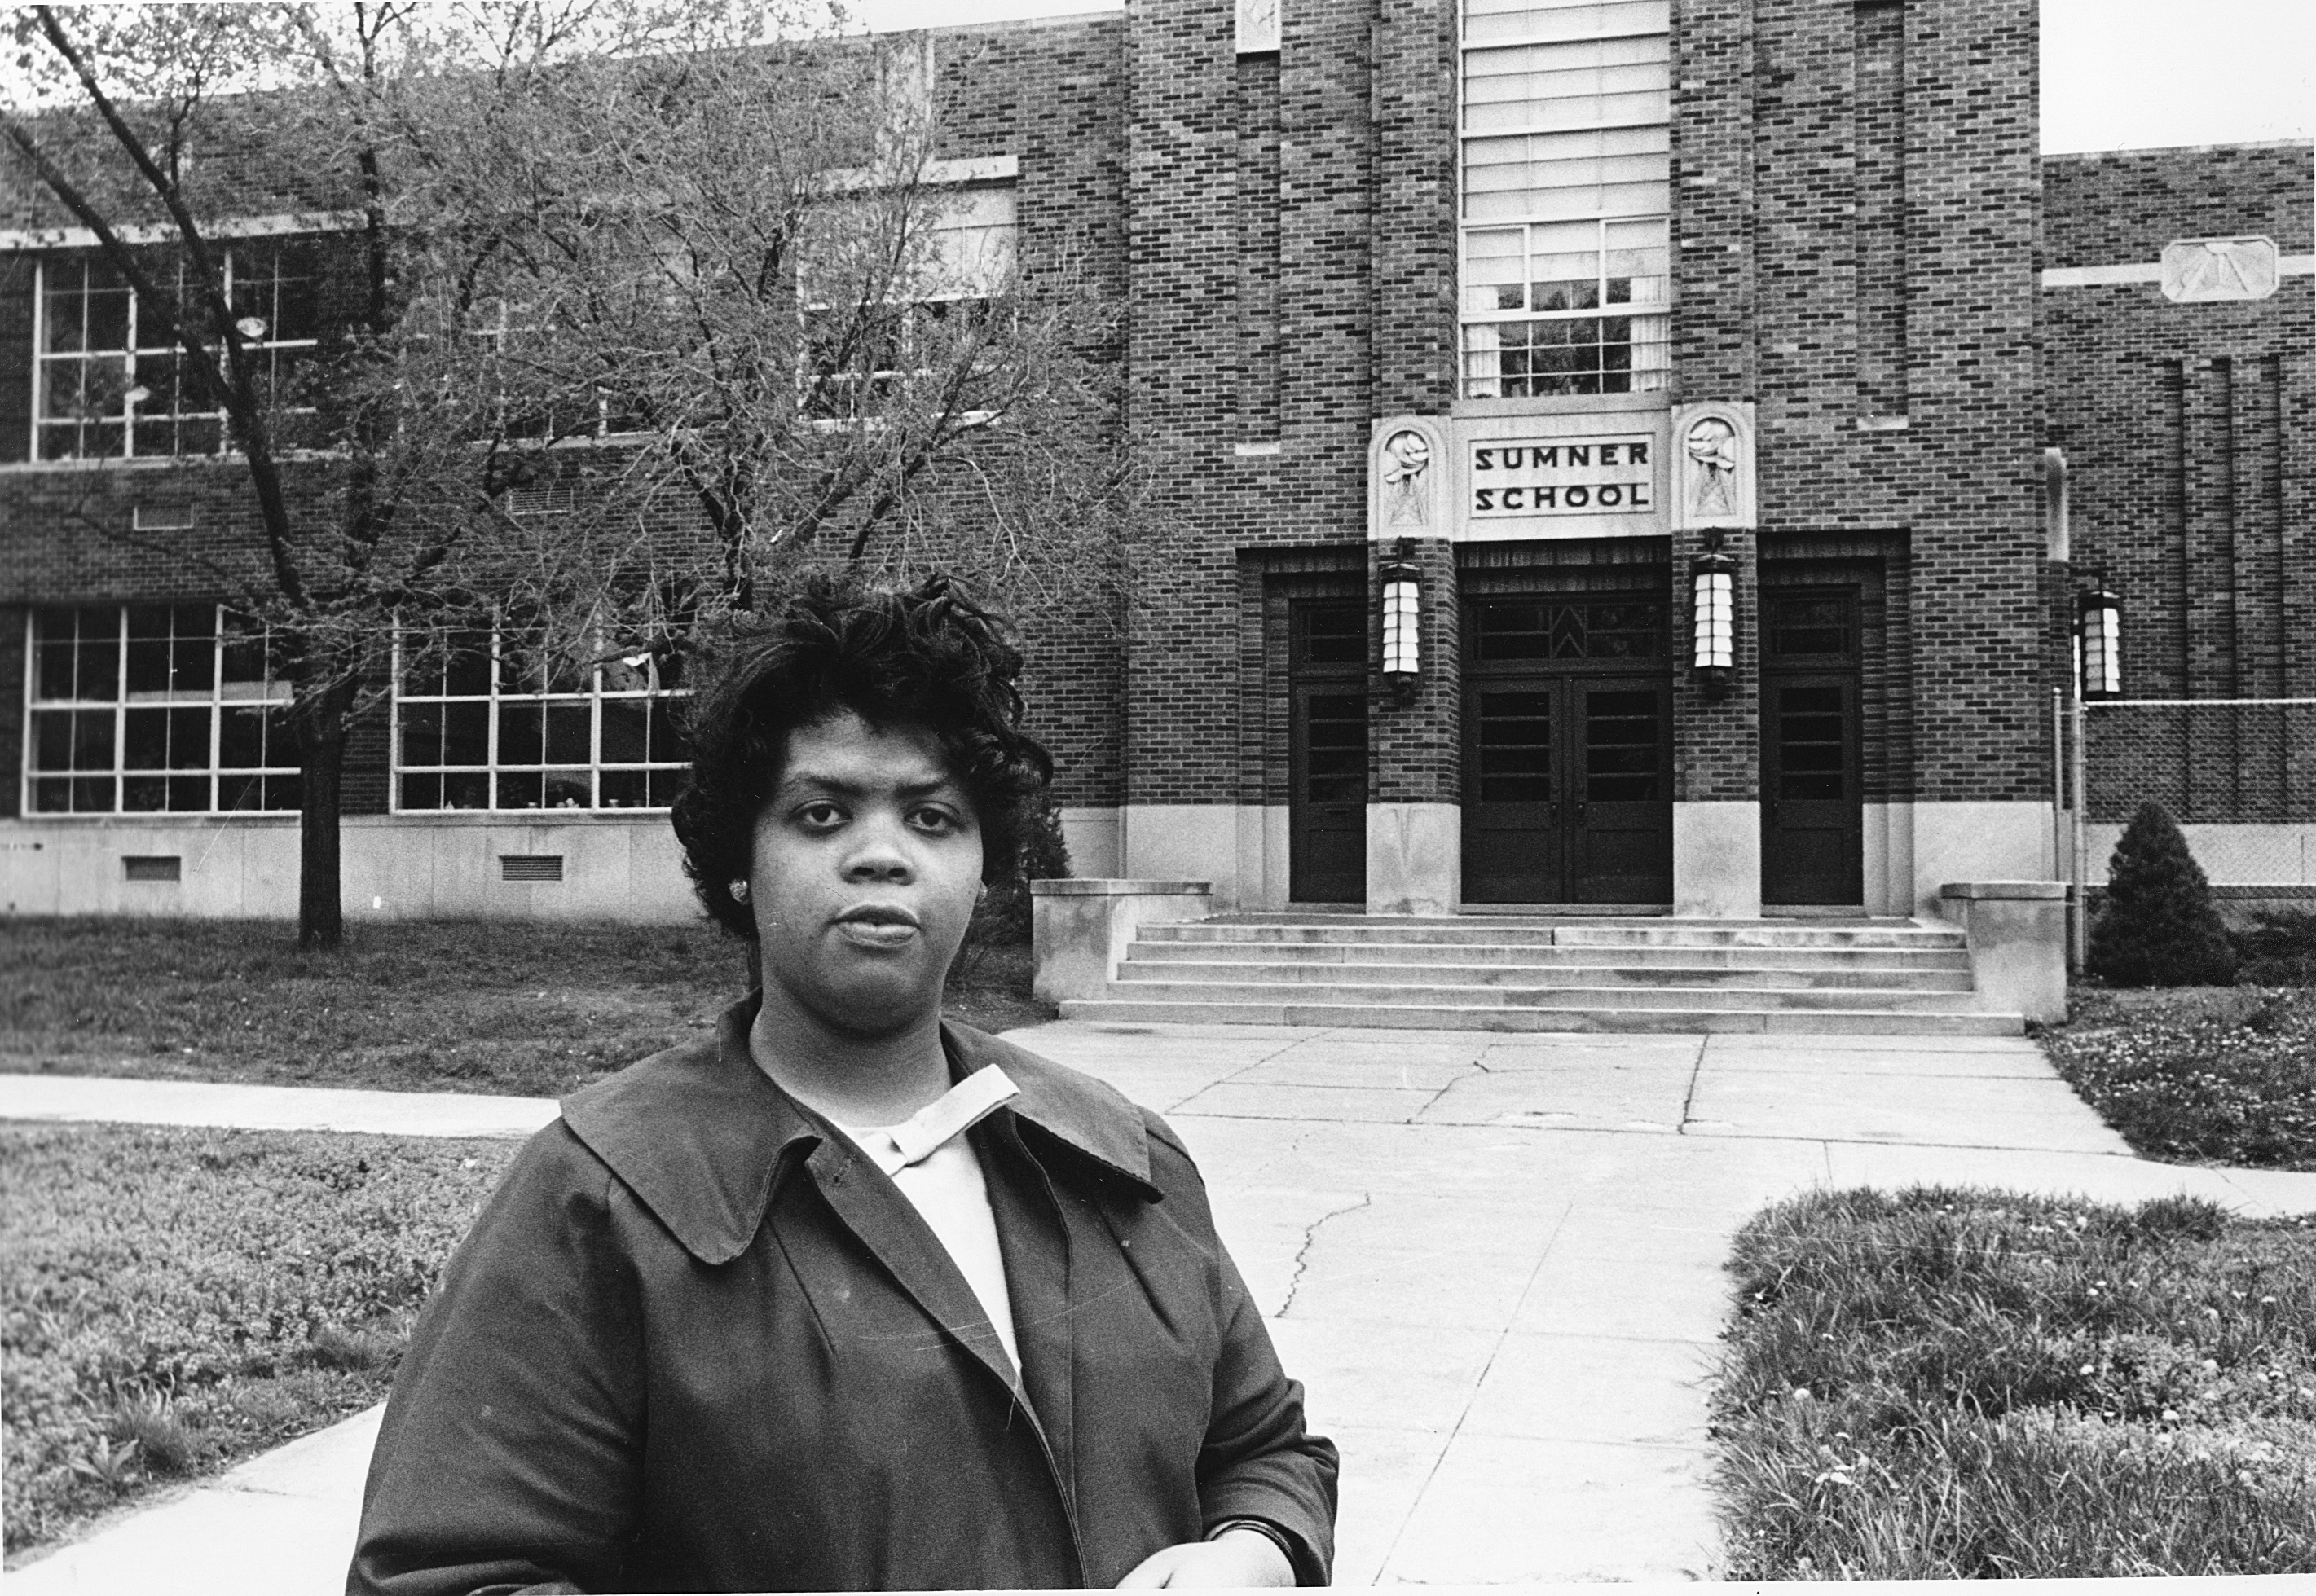 <div class='meta'><div class='origin-logo' data-origin='none'></div><span class='caption-text' data-credit='AP'>Linda Brown Smith, who as a young girl was at the center of the Brown v. Board of Education of Topeka, Kansas court case, has died. She was 76.</span></div>